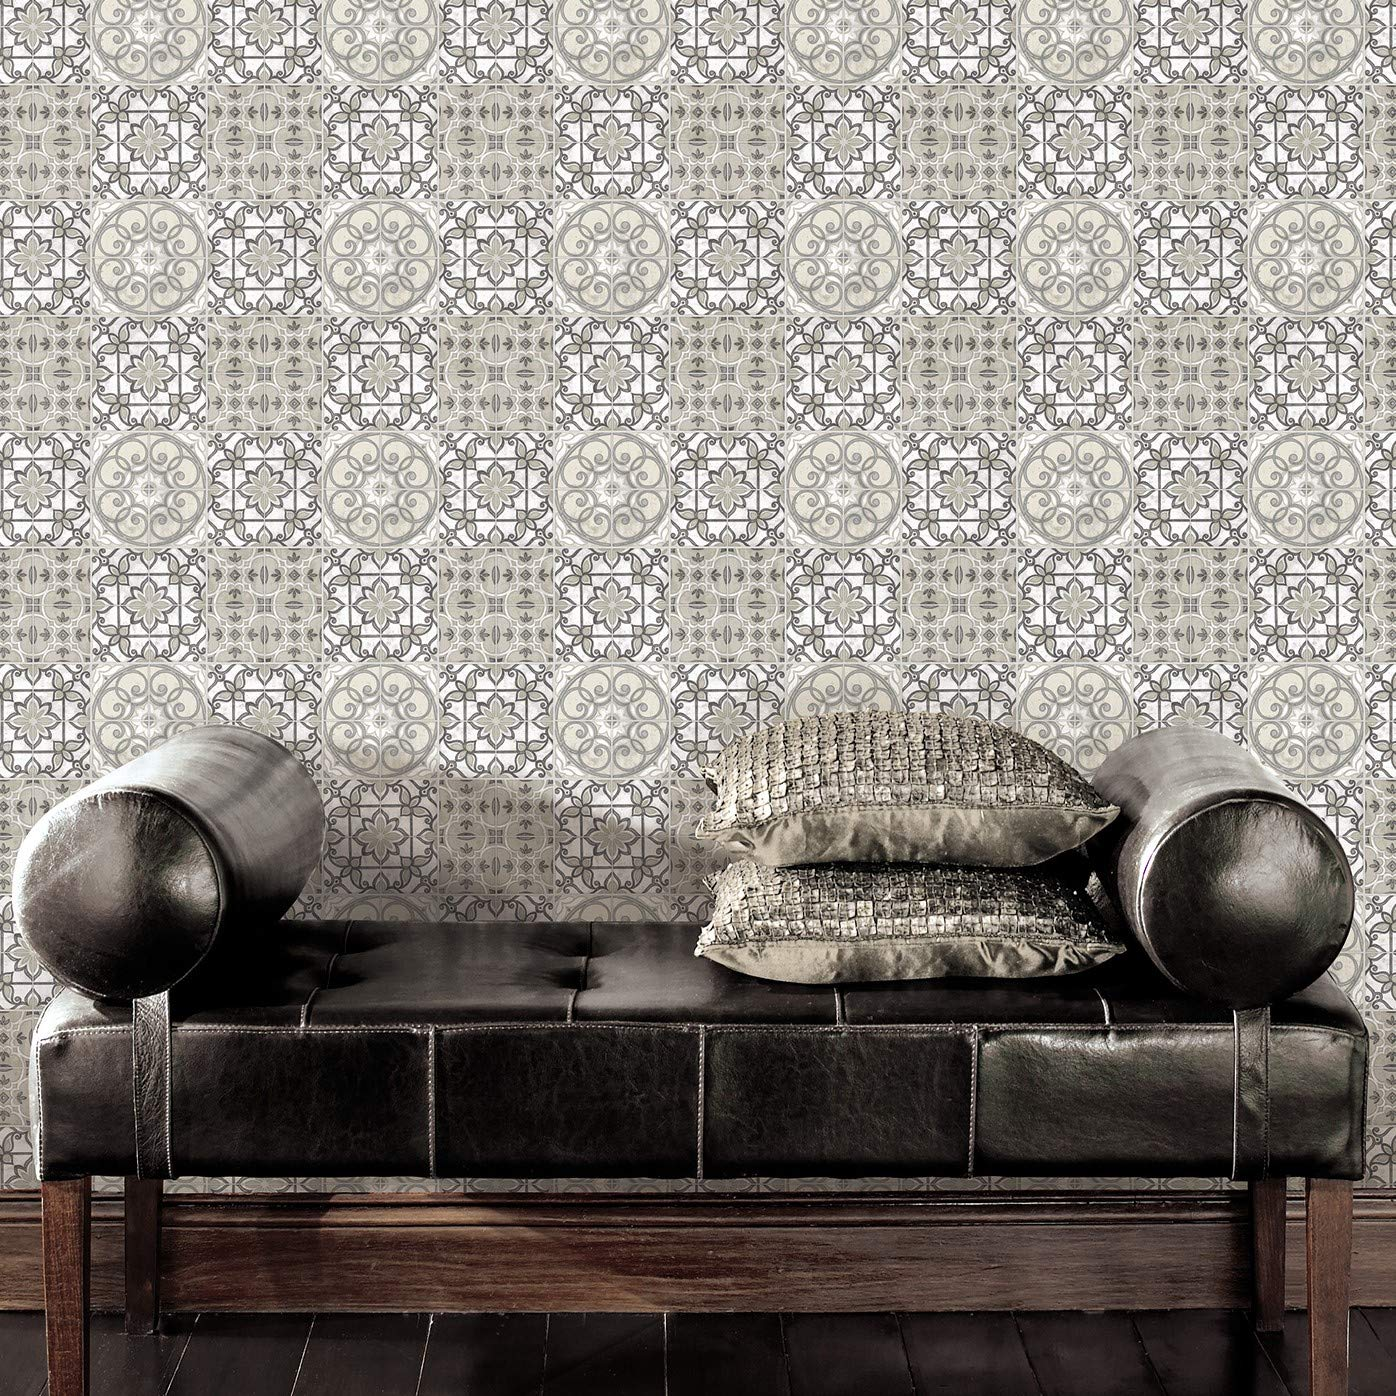 Norwall N20006T Tuscan Duo Dark Gray and White Mosaic Vinyl Peel /& Stick Tile 9.875 x 9.875 Grey Silver 4 Piece